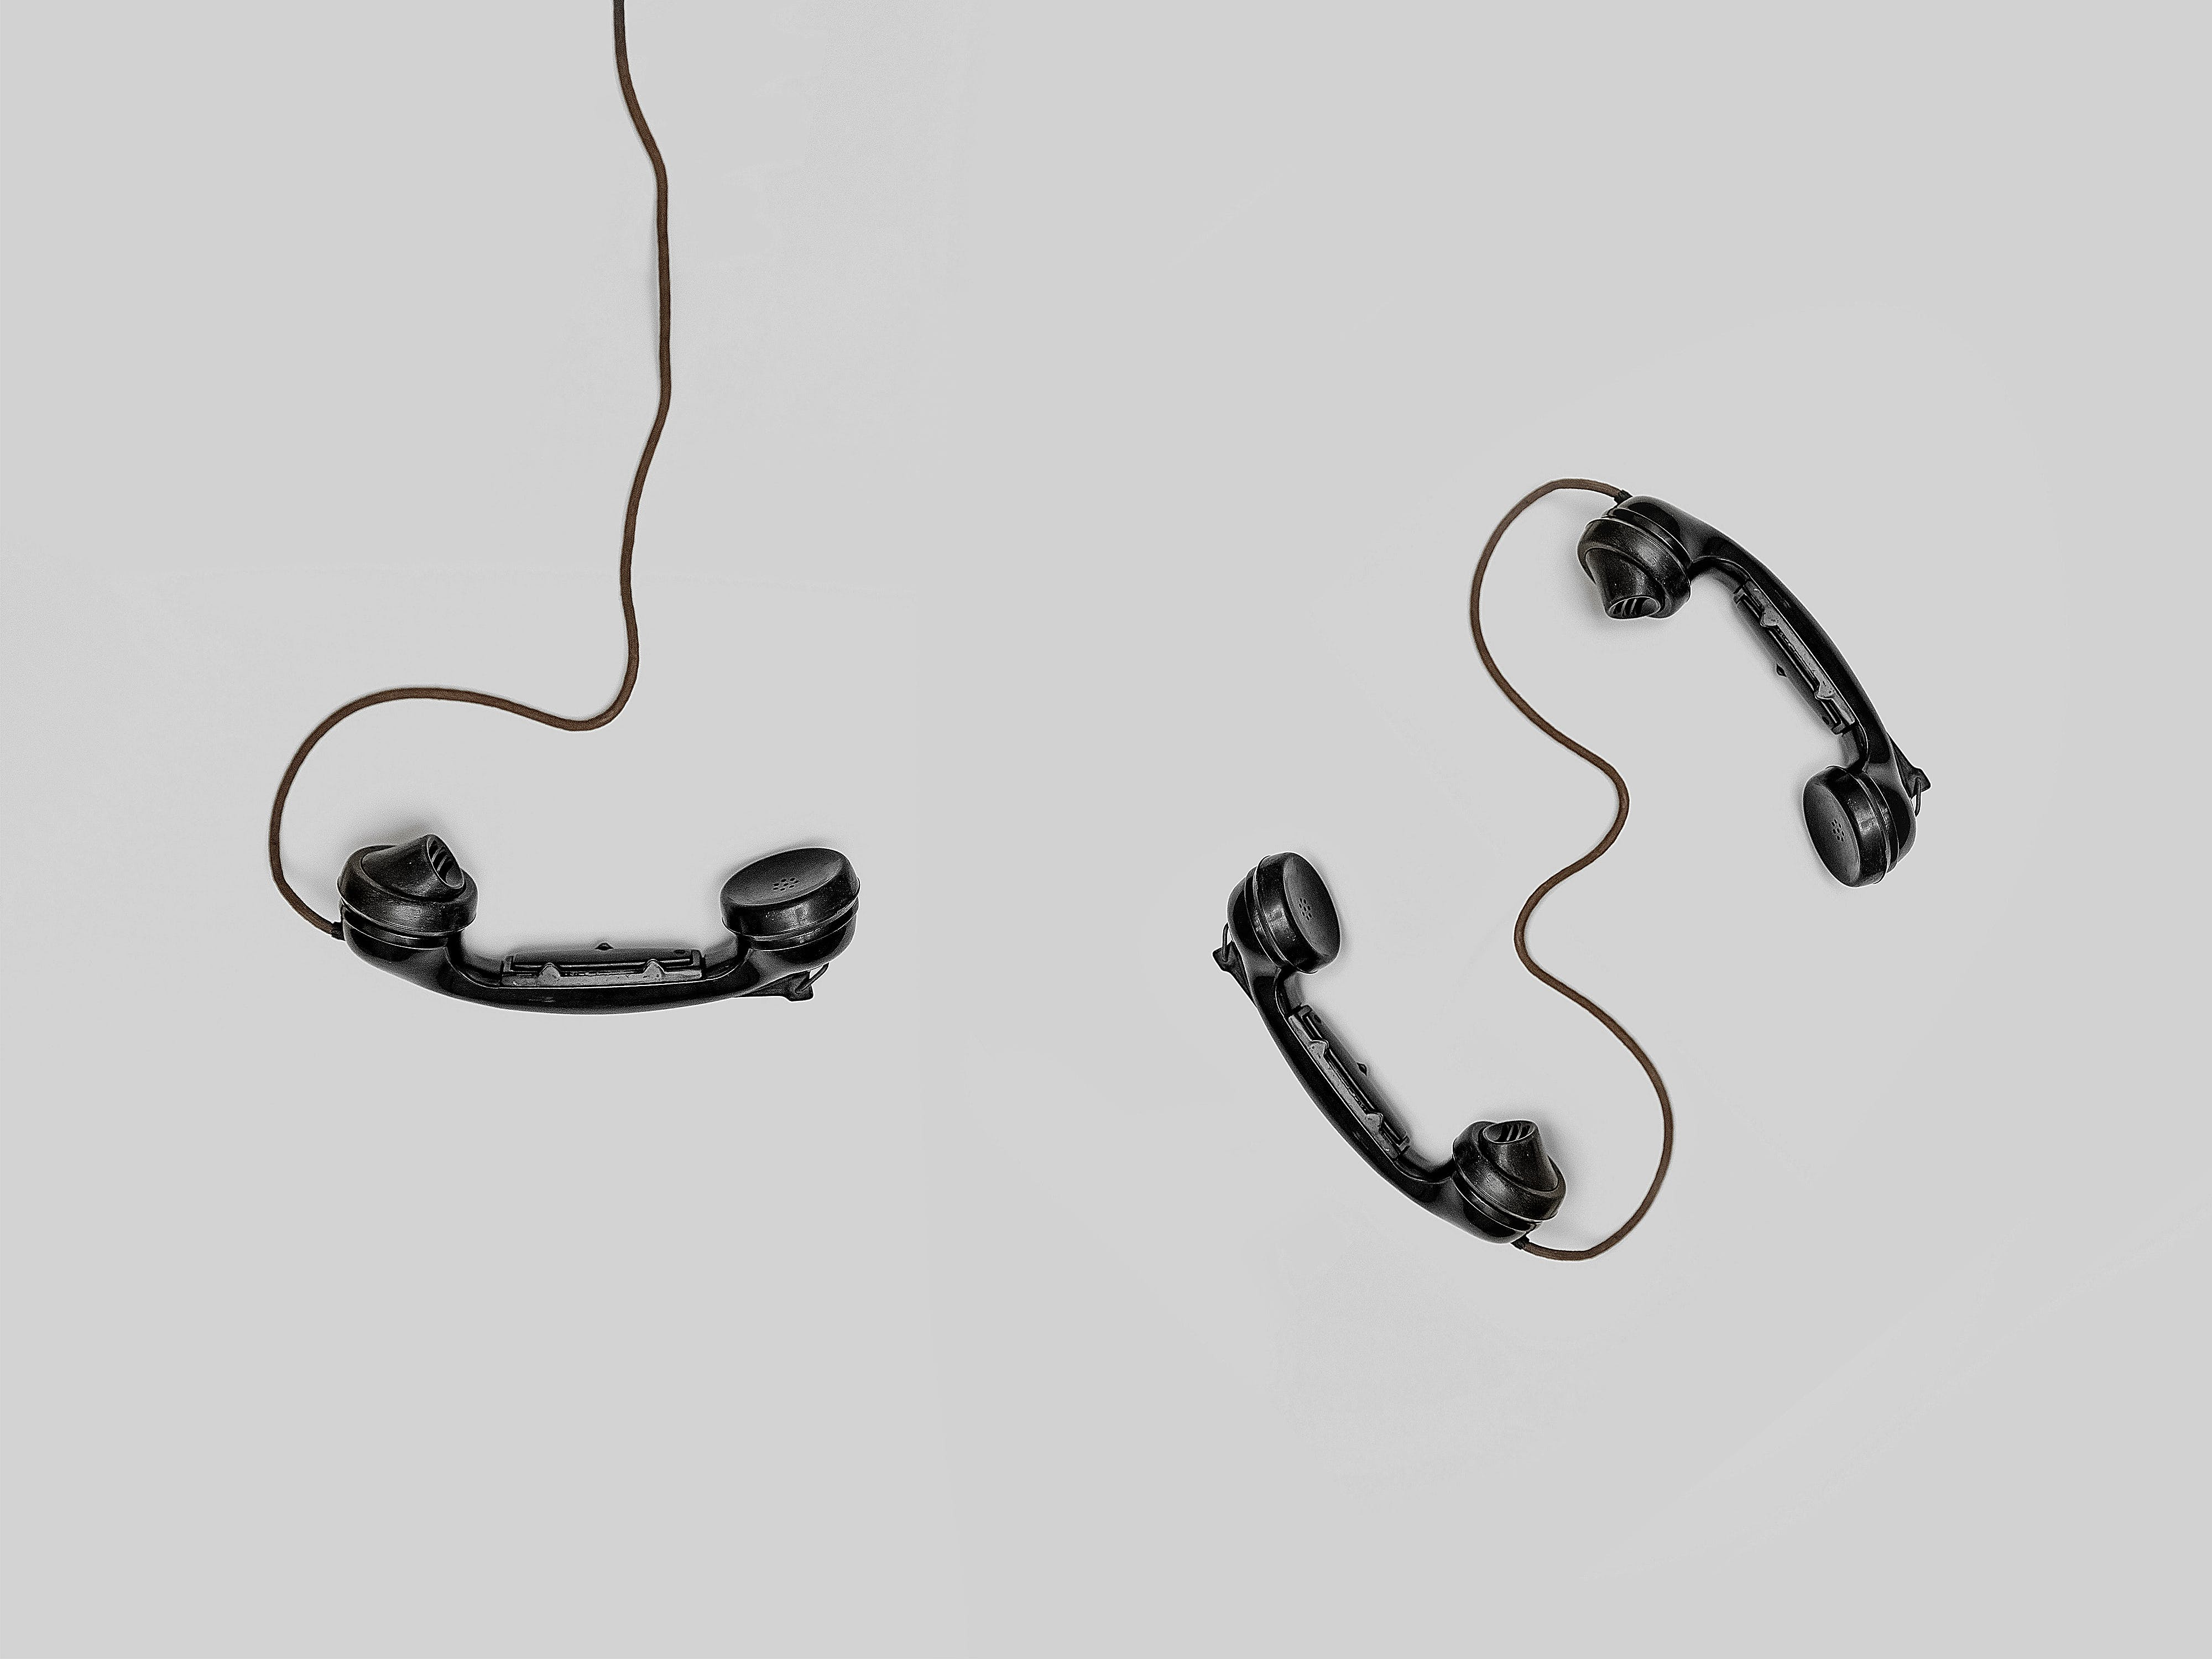 Three Black Handset Toys